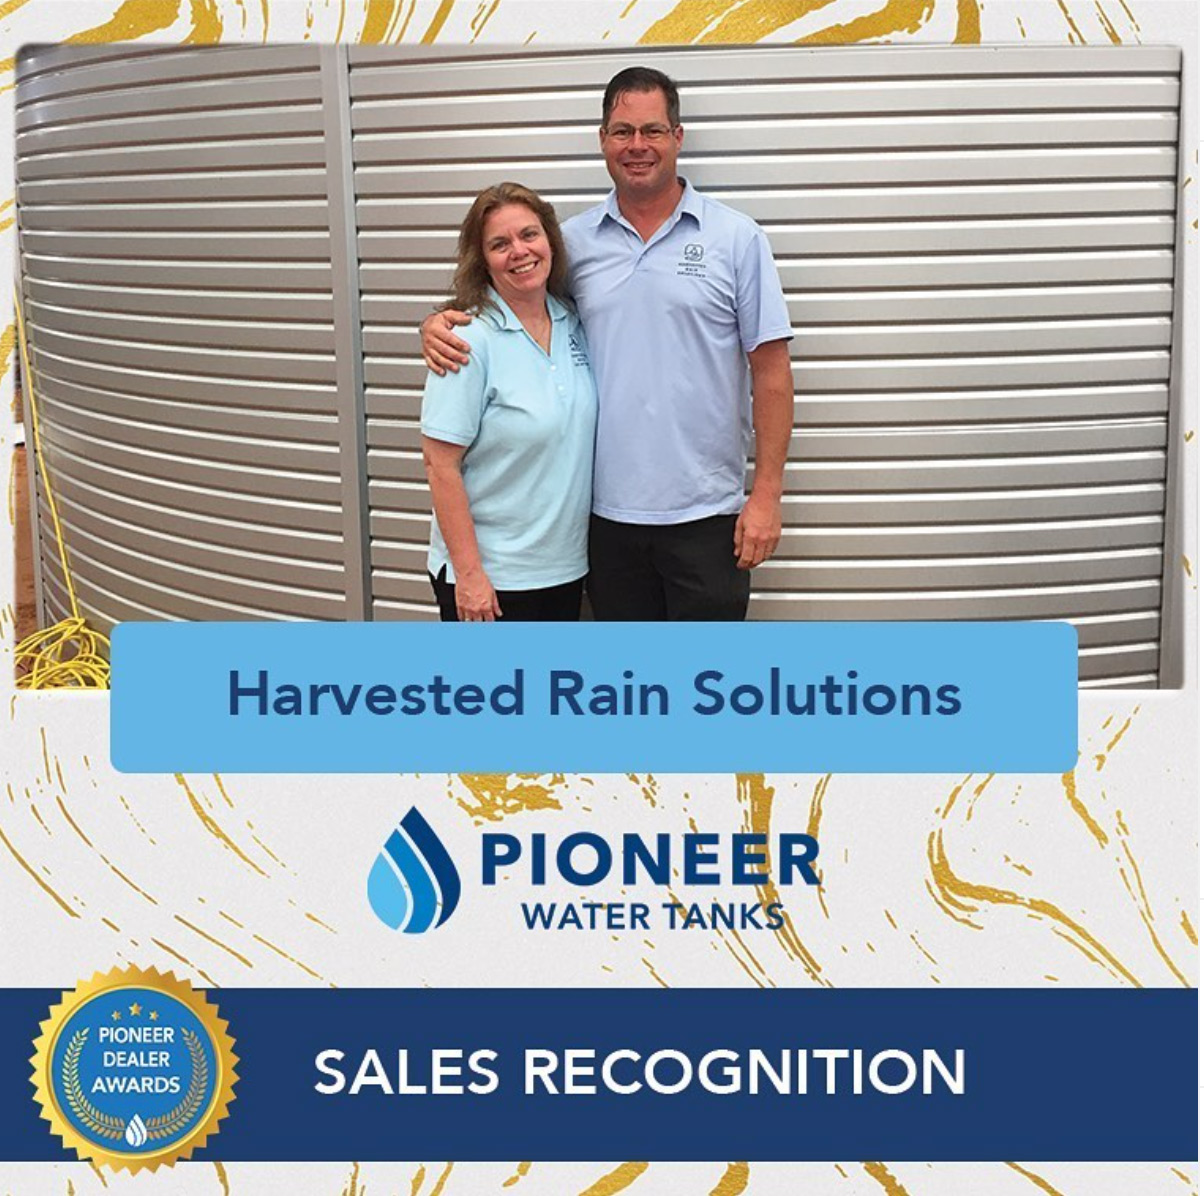 Harvested Rain Solutions | A rainwater collection company serving the Austin Texas area.